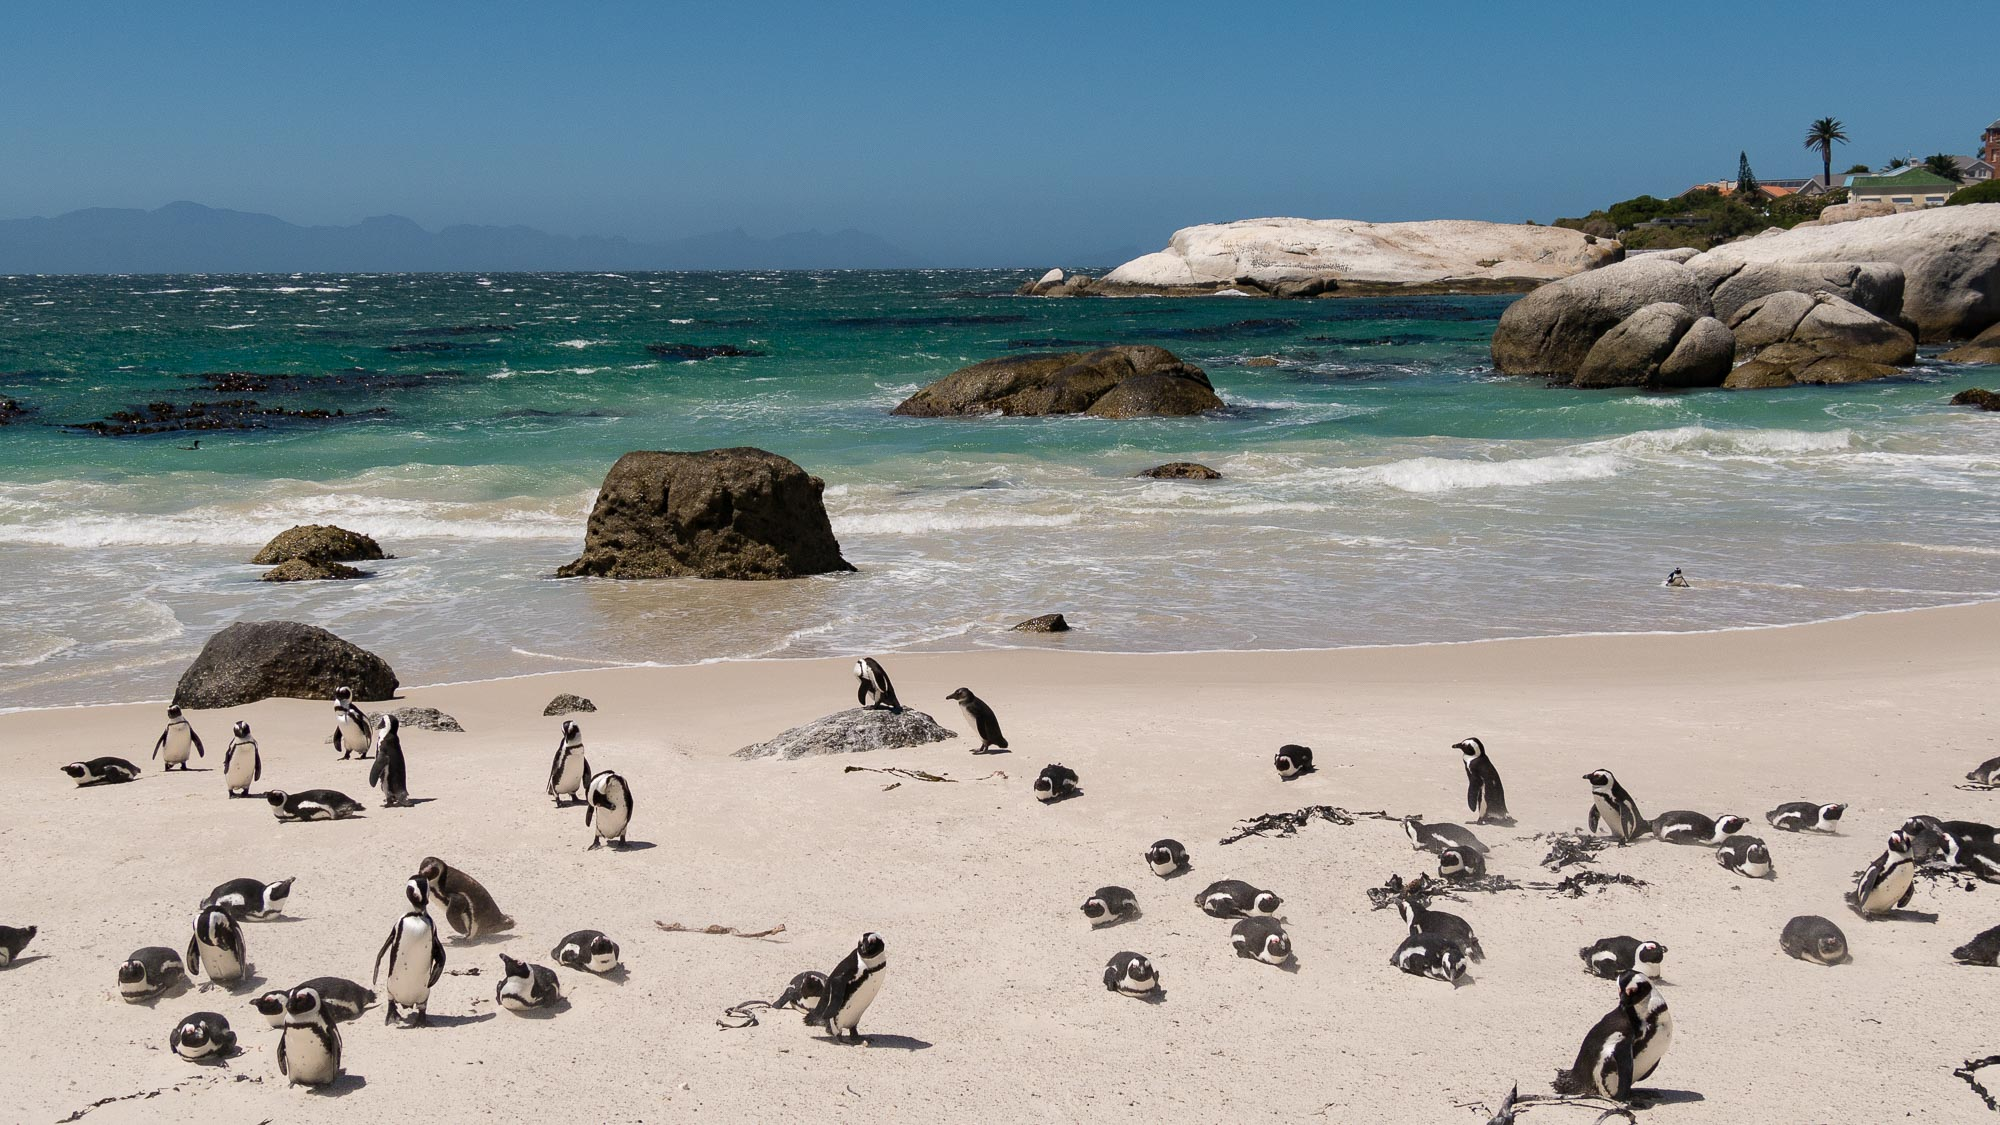 African penguins from the wider end (19mm)